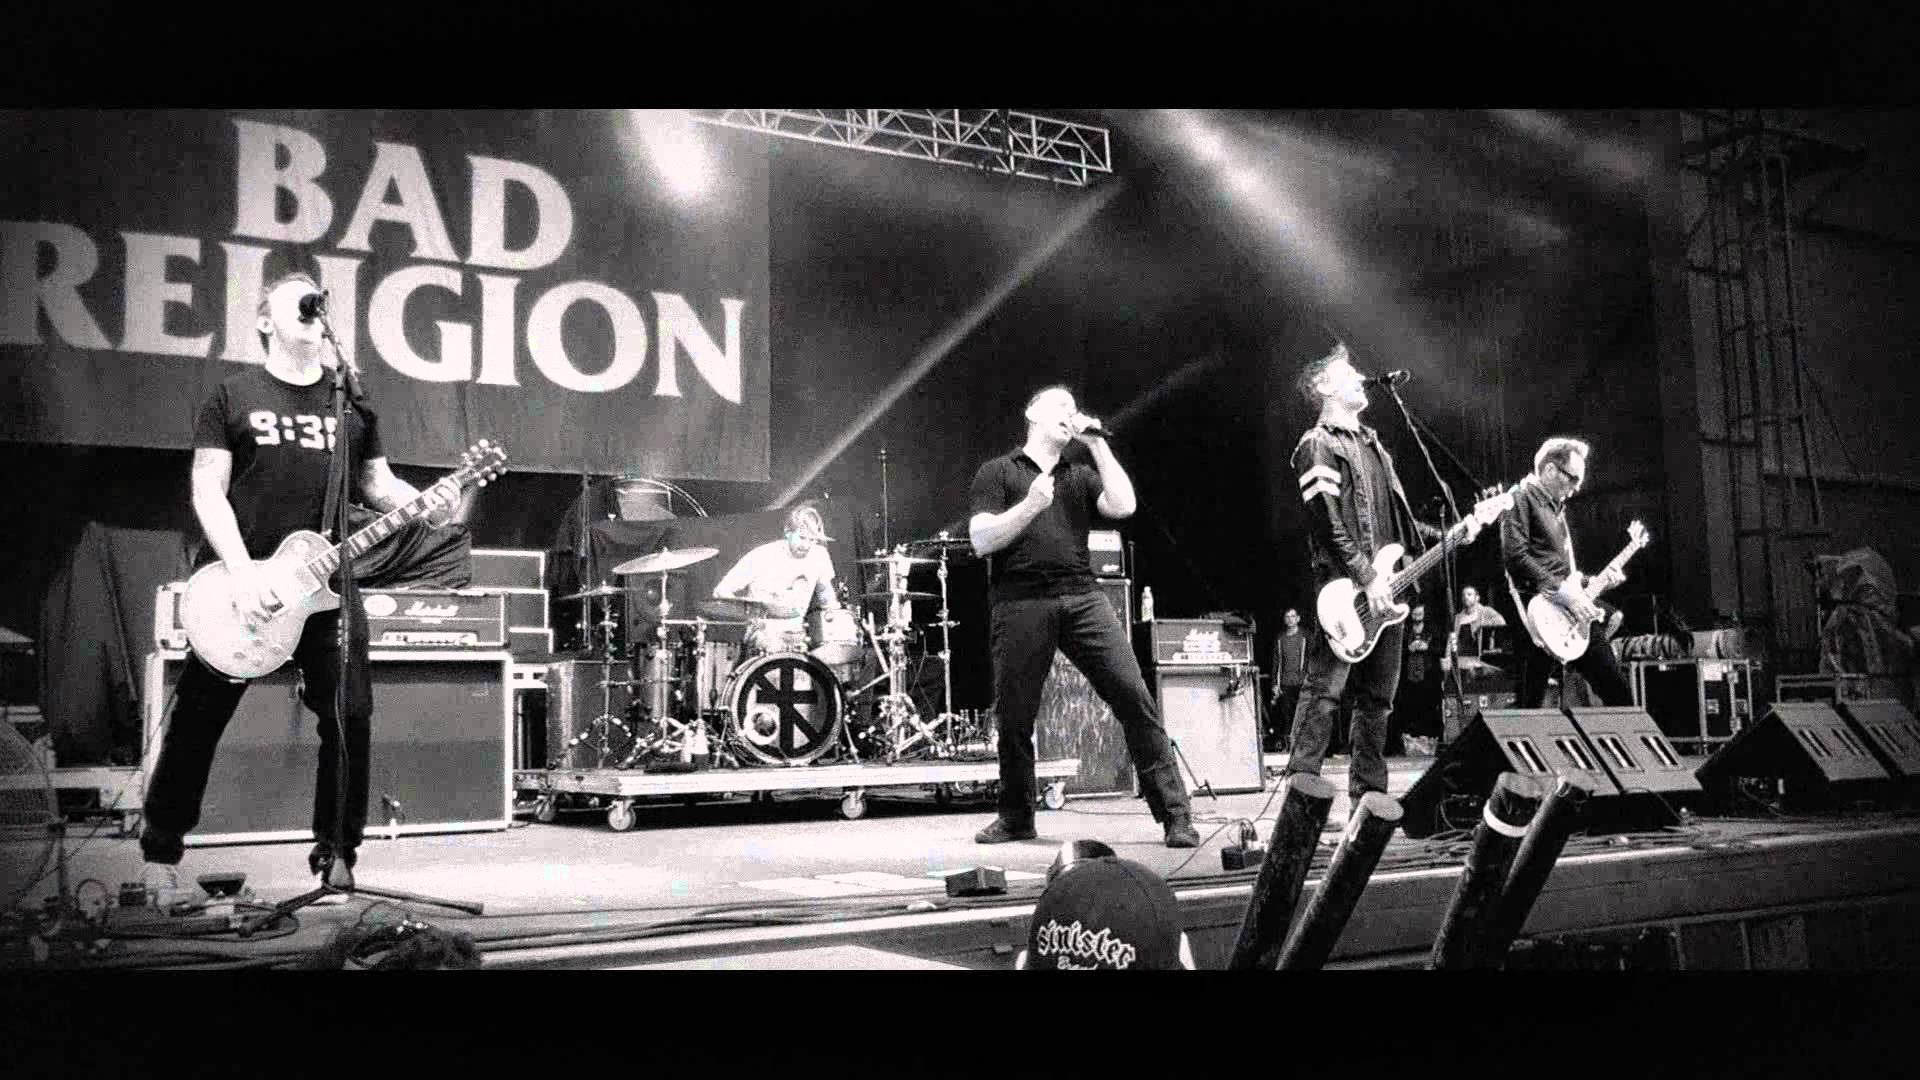 Bad Religion Suffer Wallpaper Bad religion is the best band 1920x1080